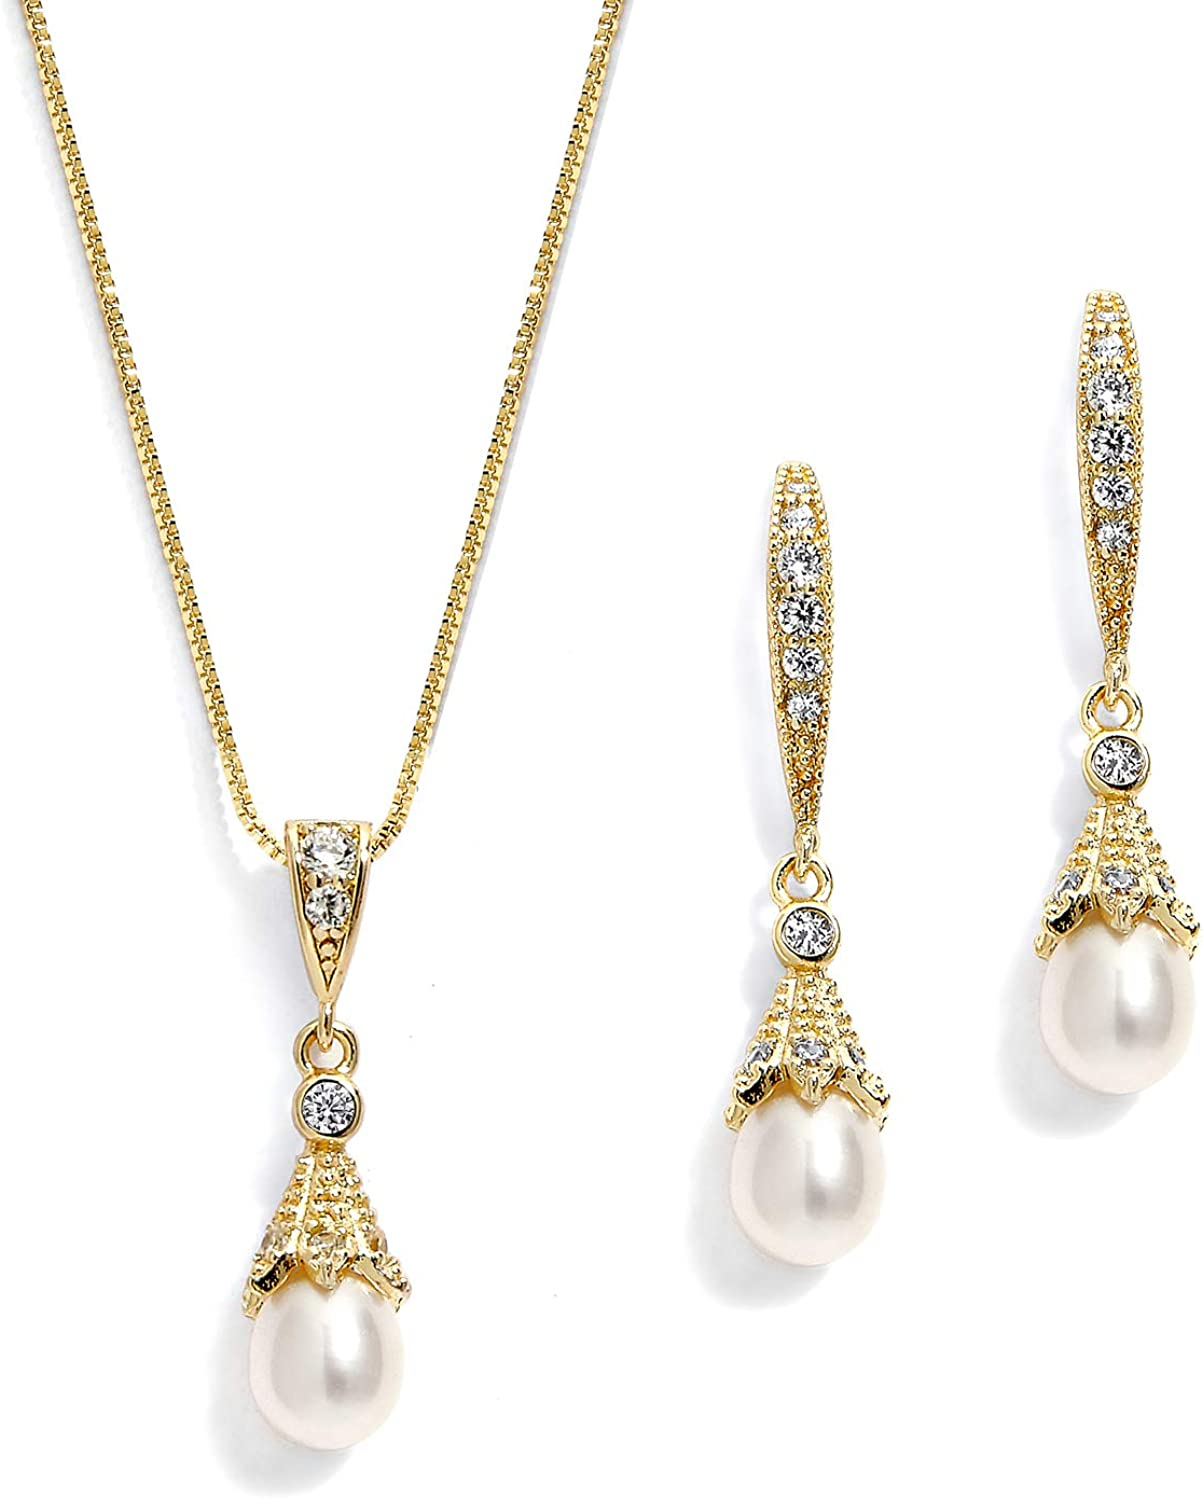 Mariell Gold Fashion Wedding Necklace Earrings Freshw Selling Set Jewelry with